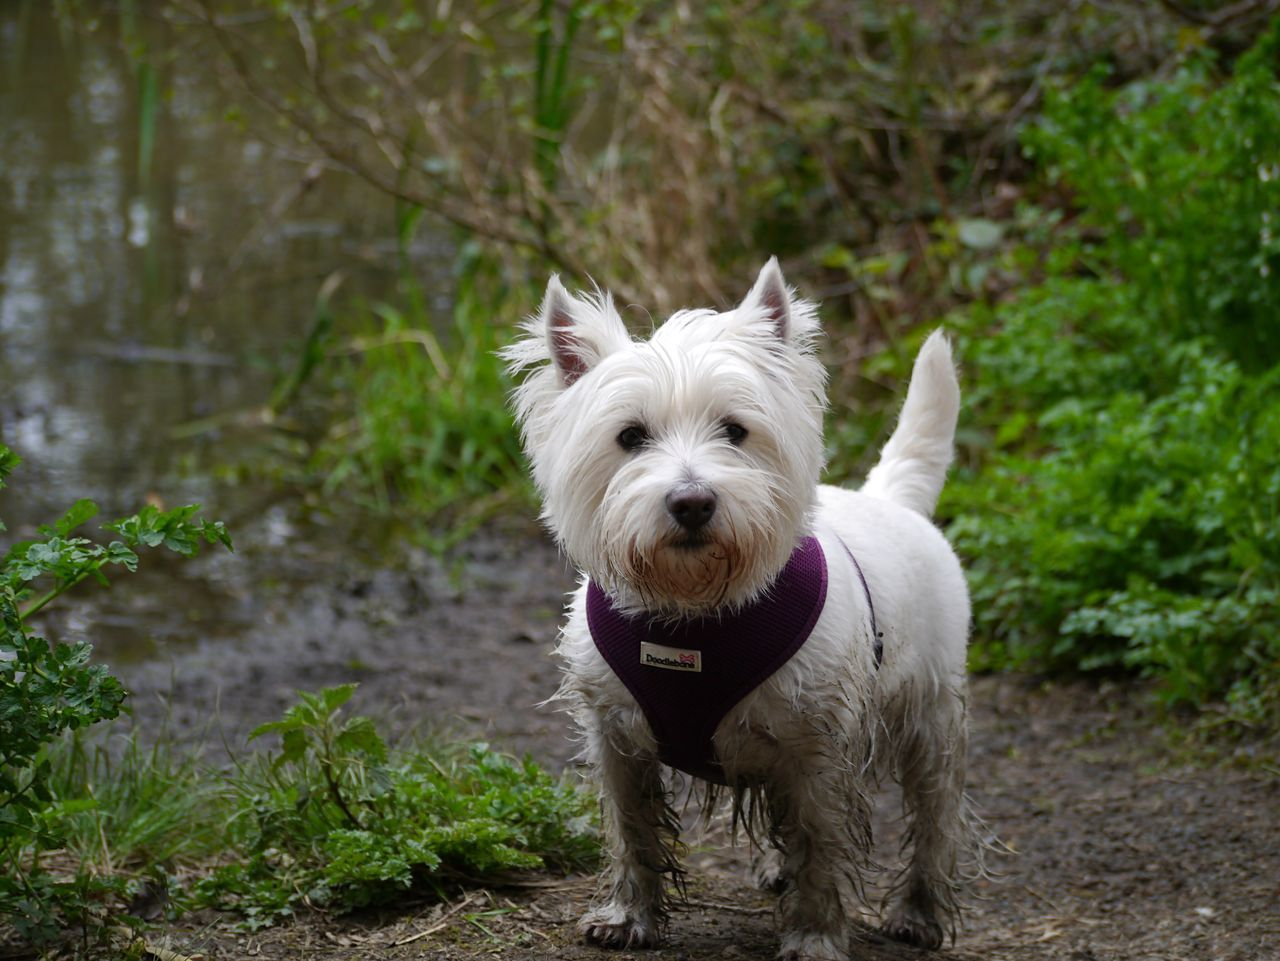 EyeEmNewHere Dog Pets West Highland White Terrier Domestic Animals One Animal Animal Themes Animal Hair No People Puppy Outdoors Day Mammal Happy Devon Beauty In Nature EyeEmNewHere